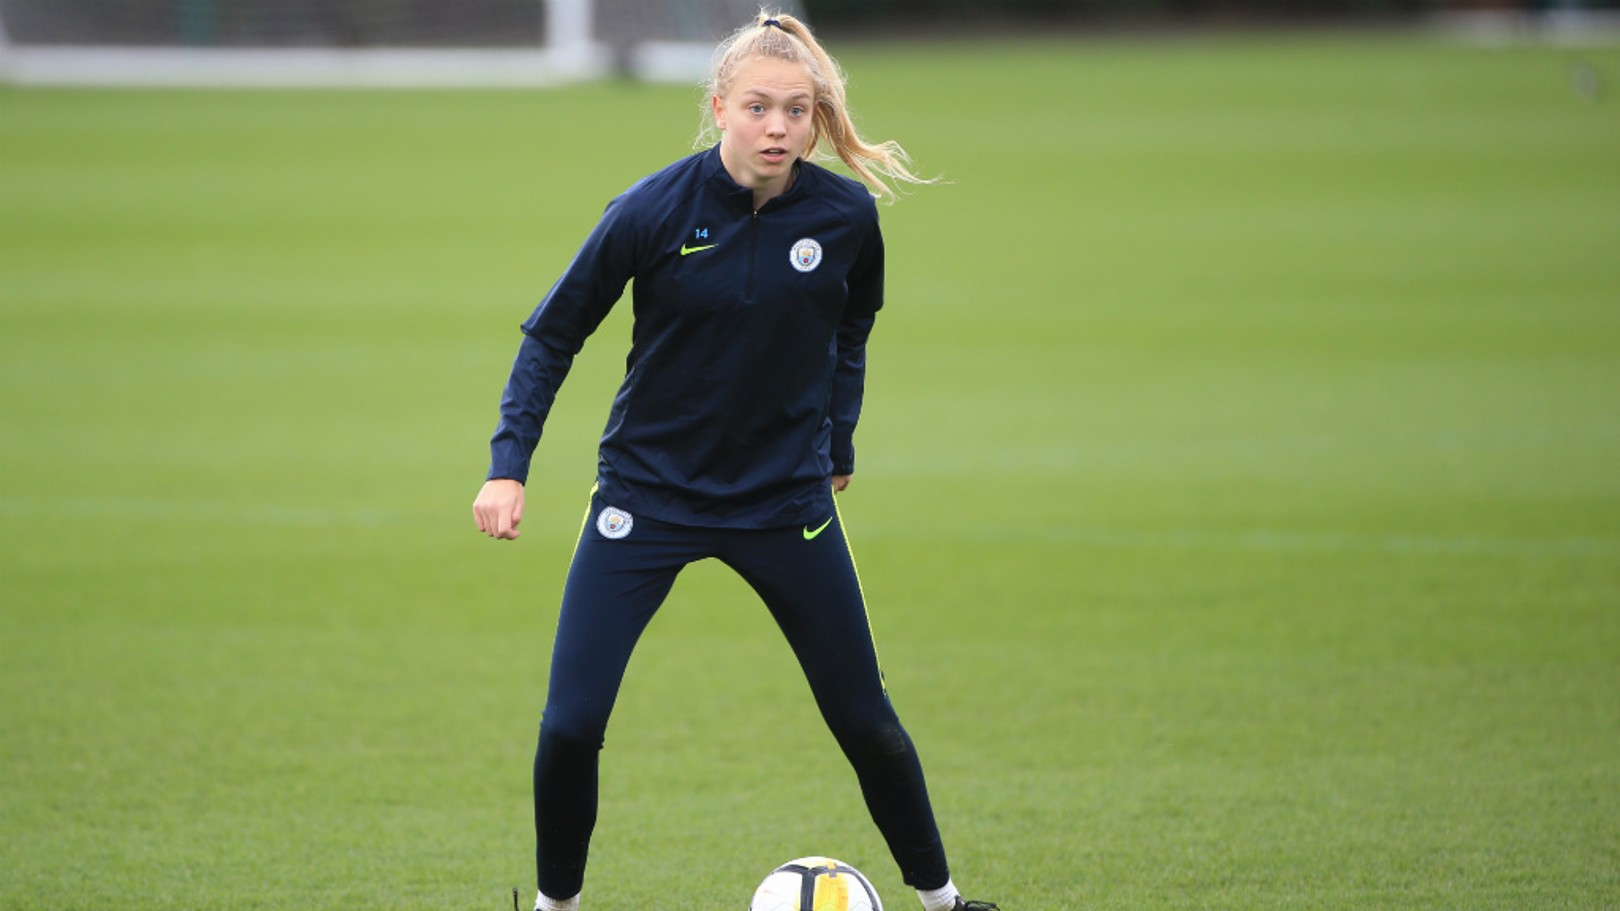 DEFENSIVE STEEL: Esme Morgan takes the ball in training.